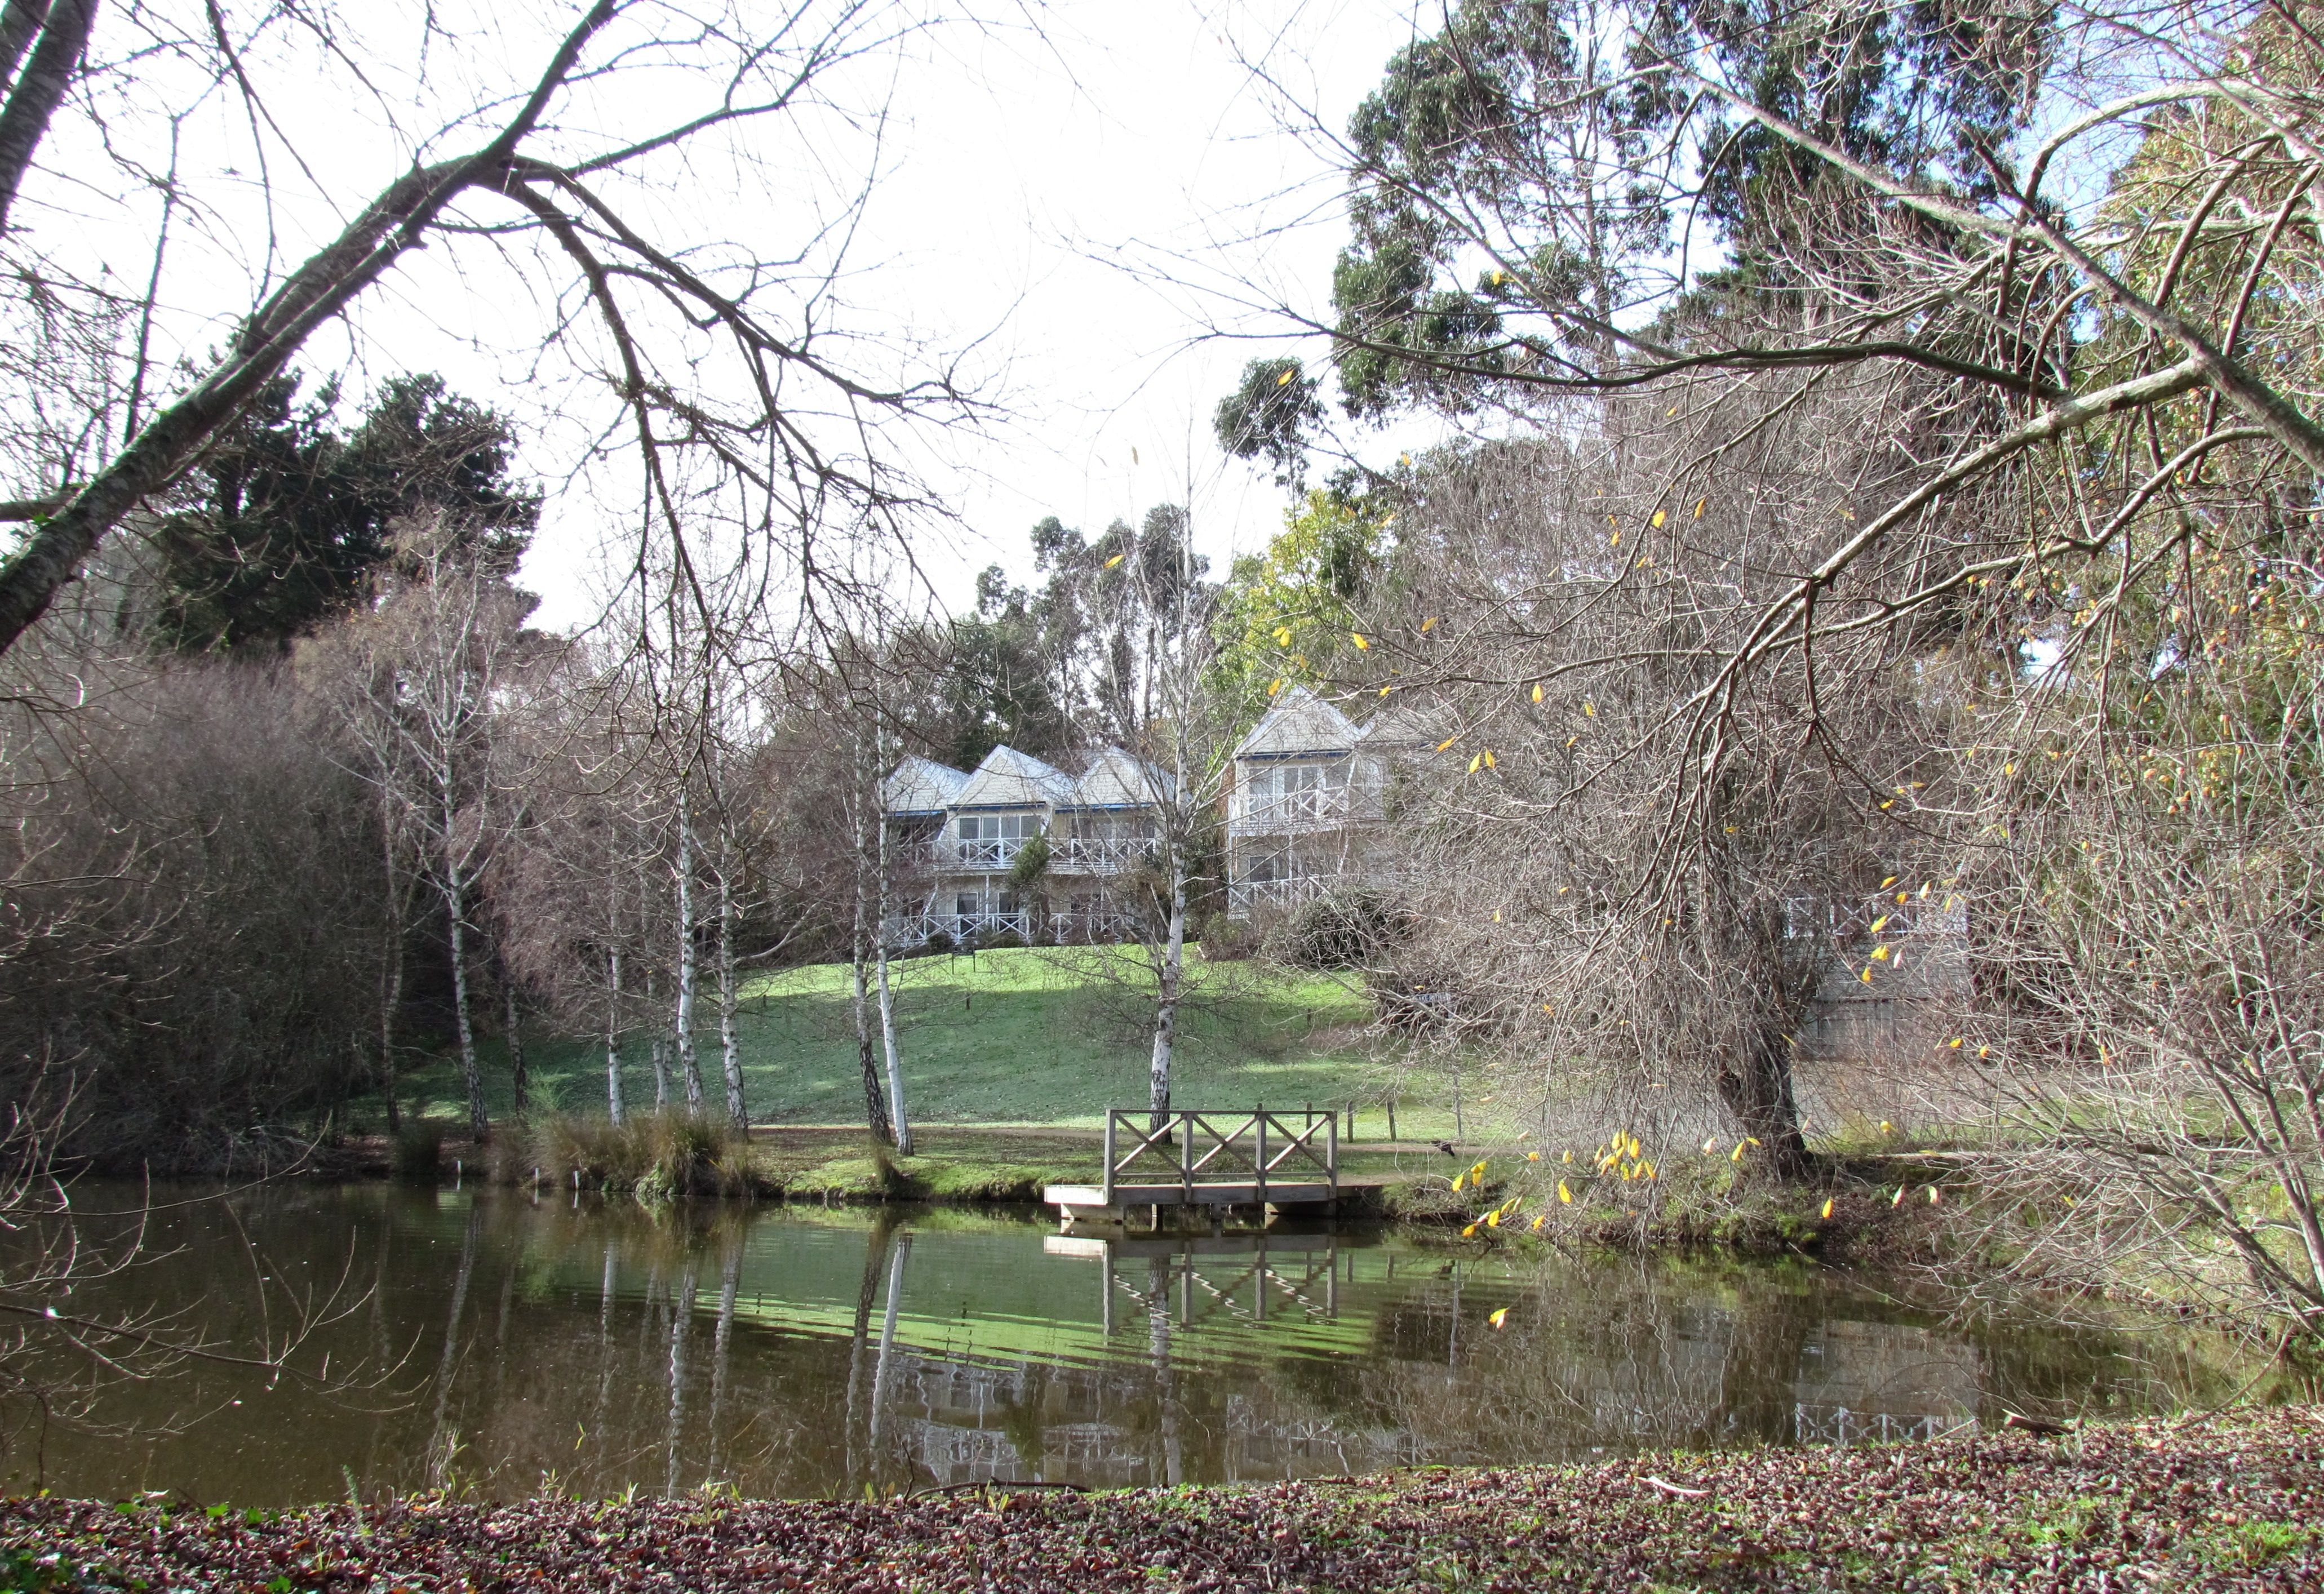 Lake house daylesford images